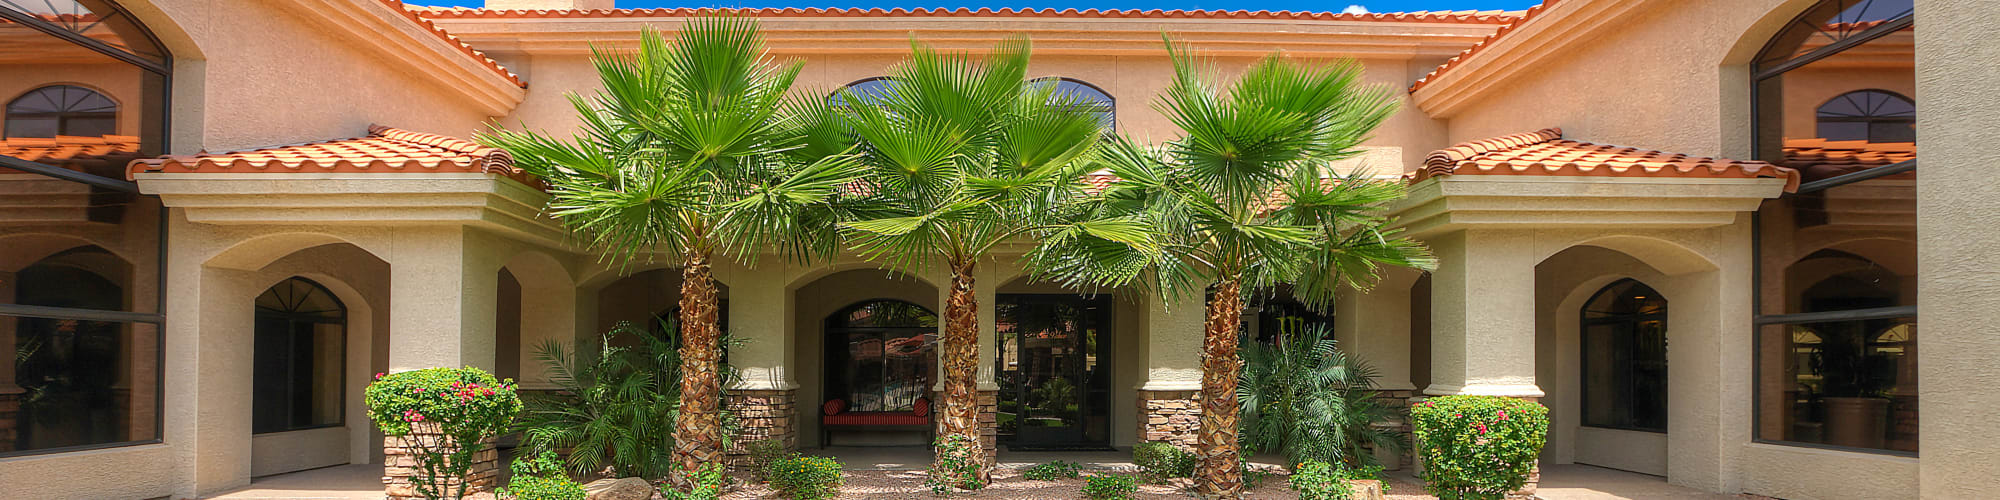 Contact us at San Palacio in Chandler, Arizona